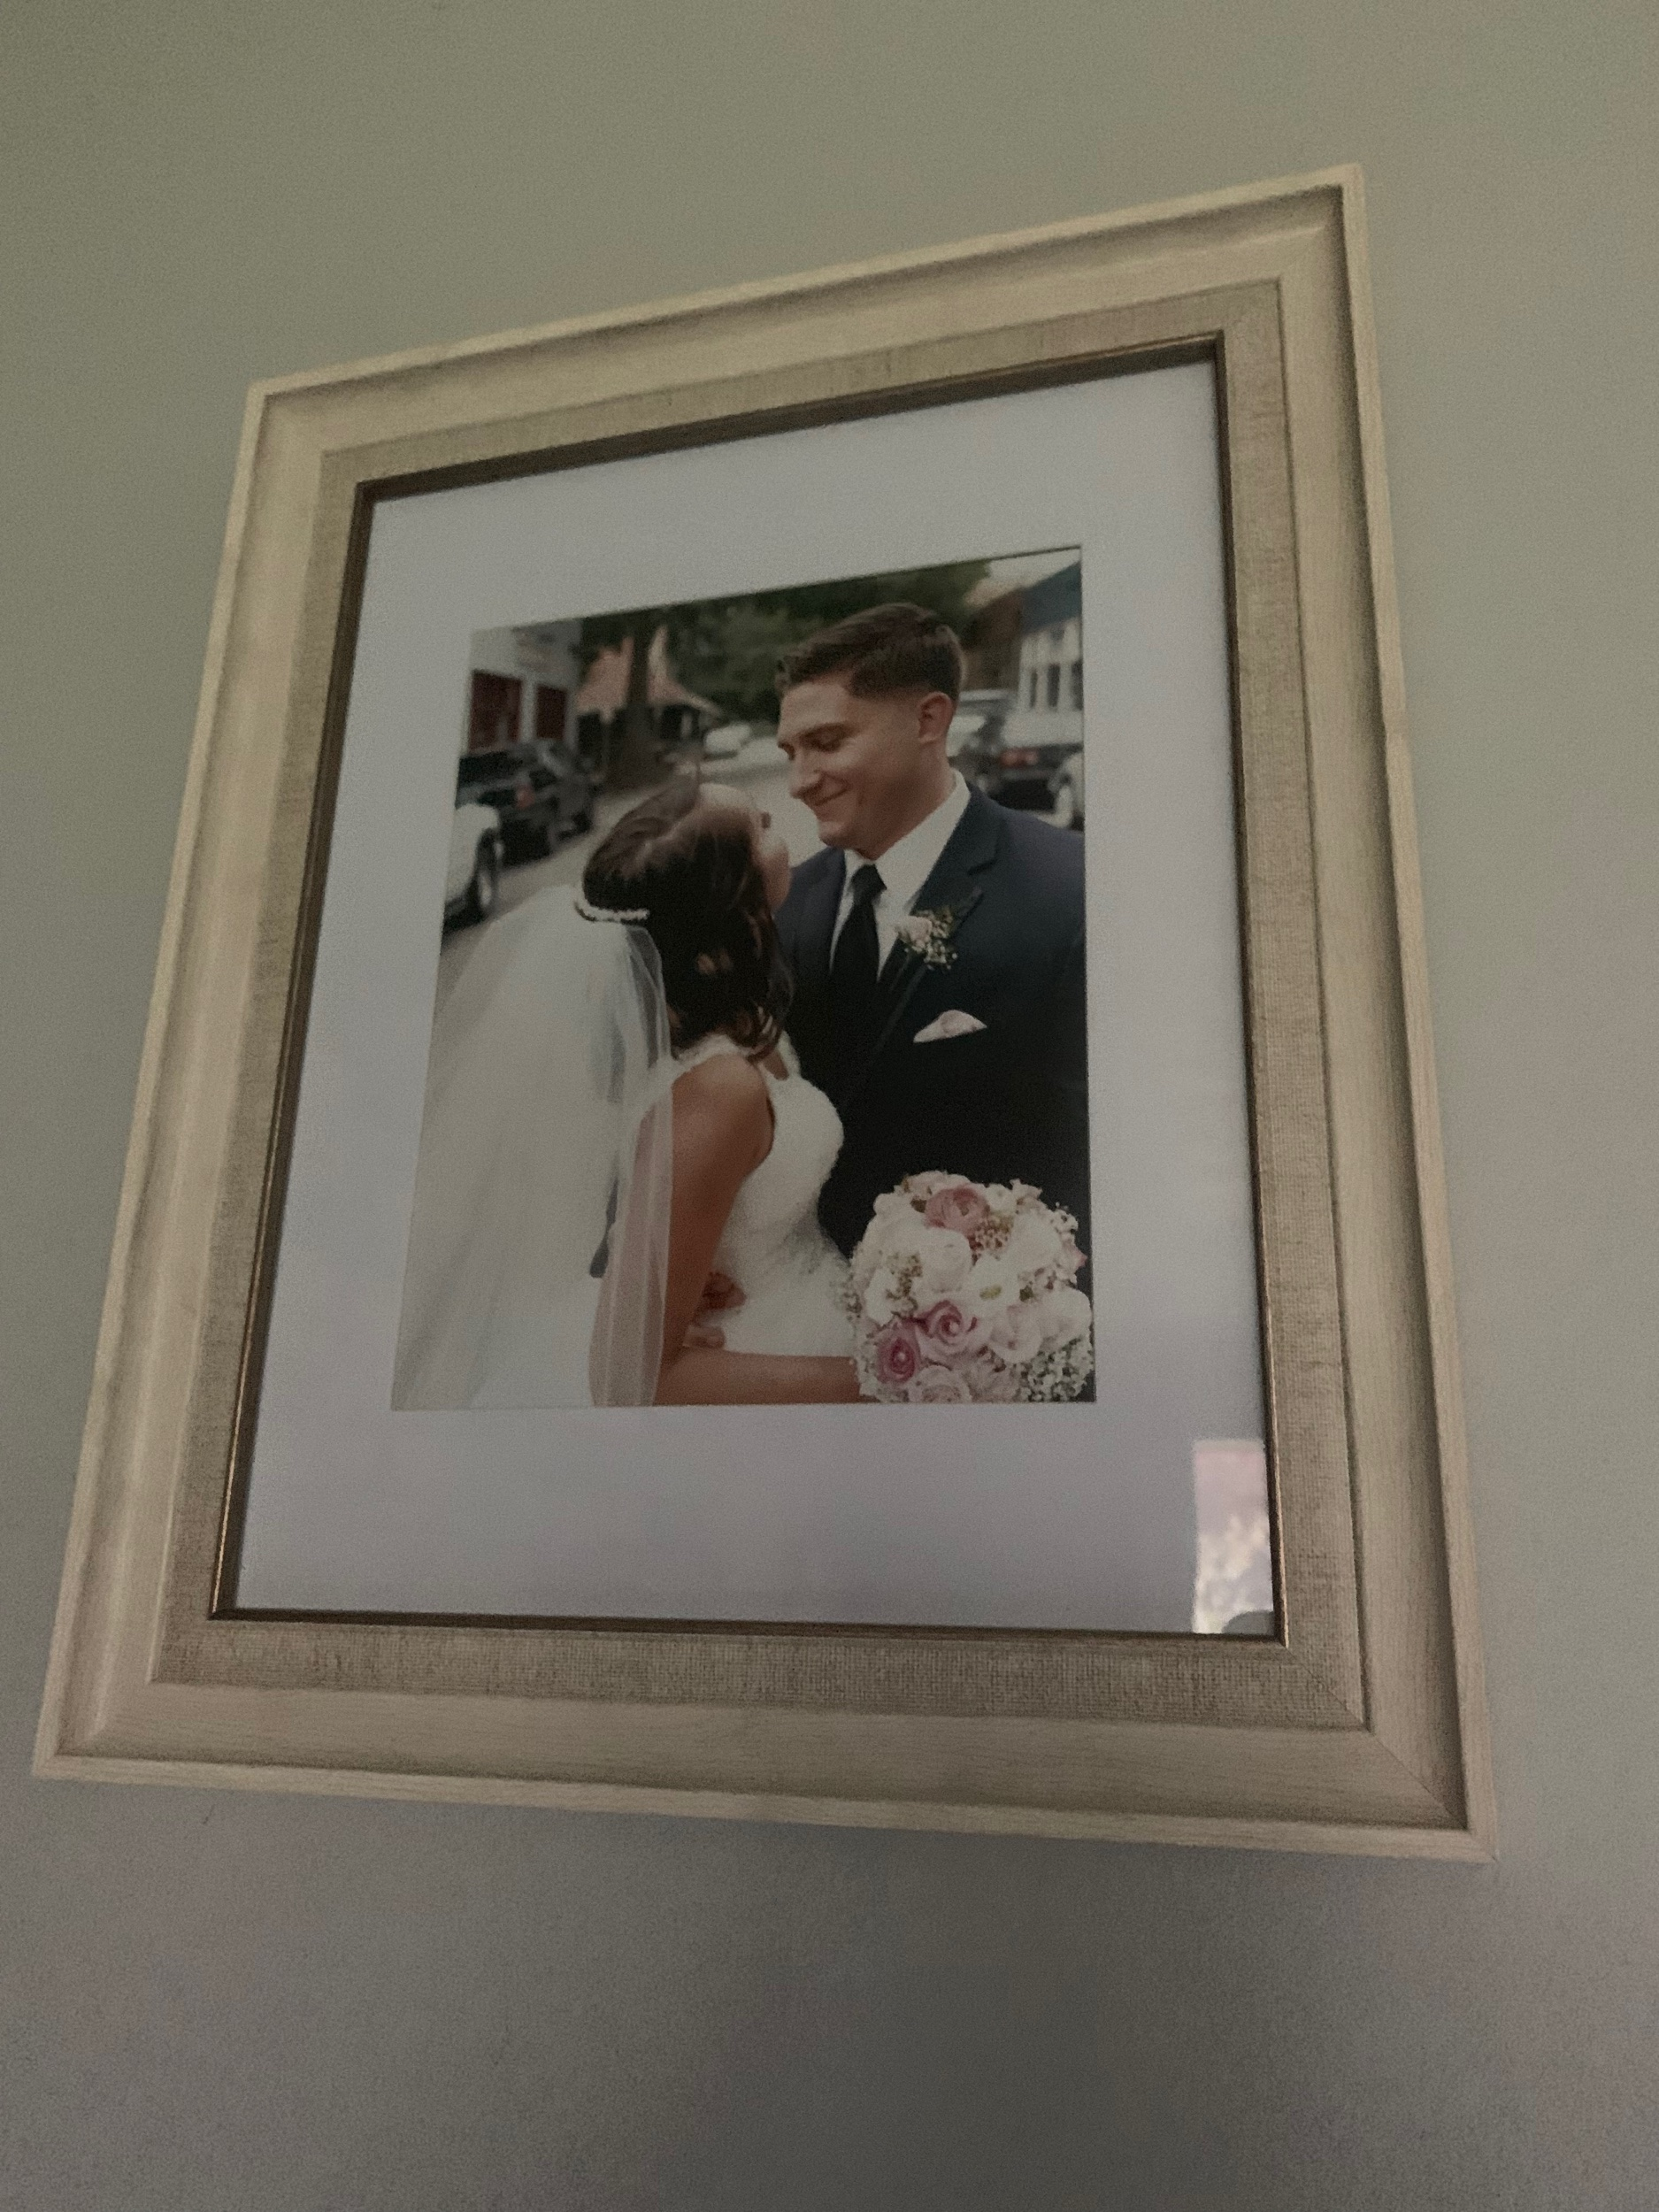 Here's an up close photo of the frame with the photo in it!